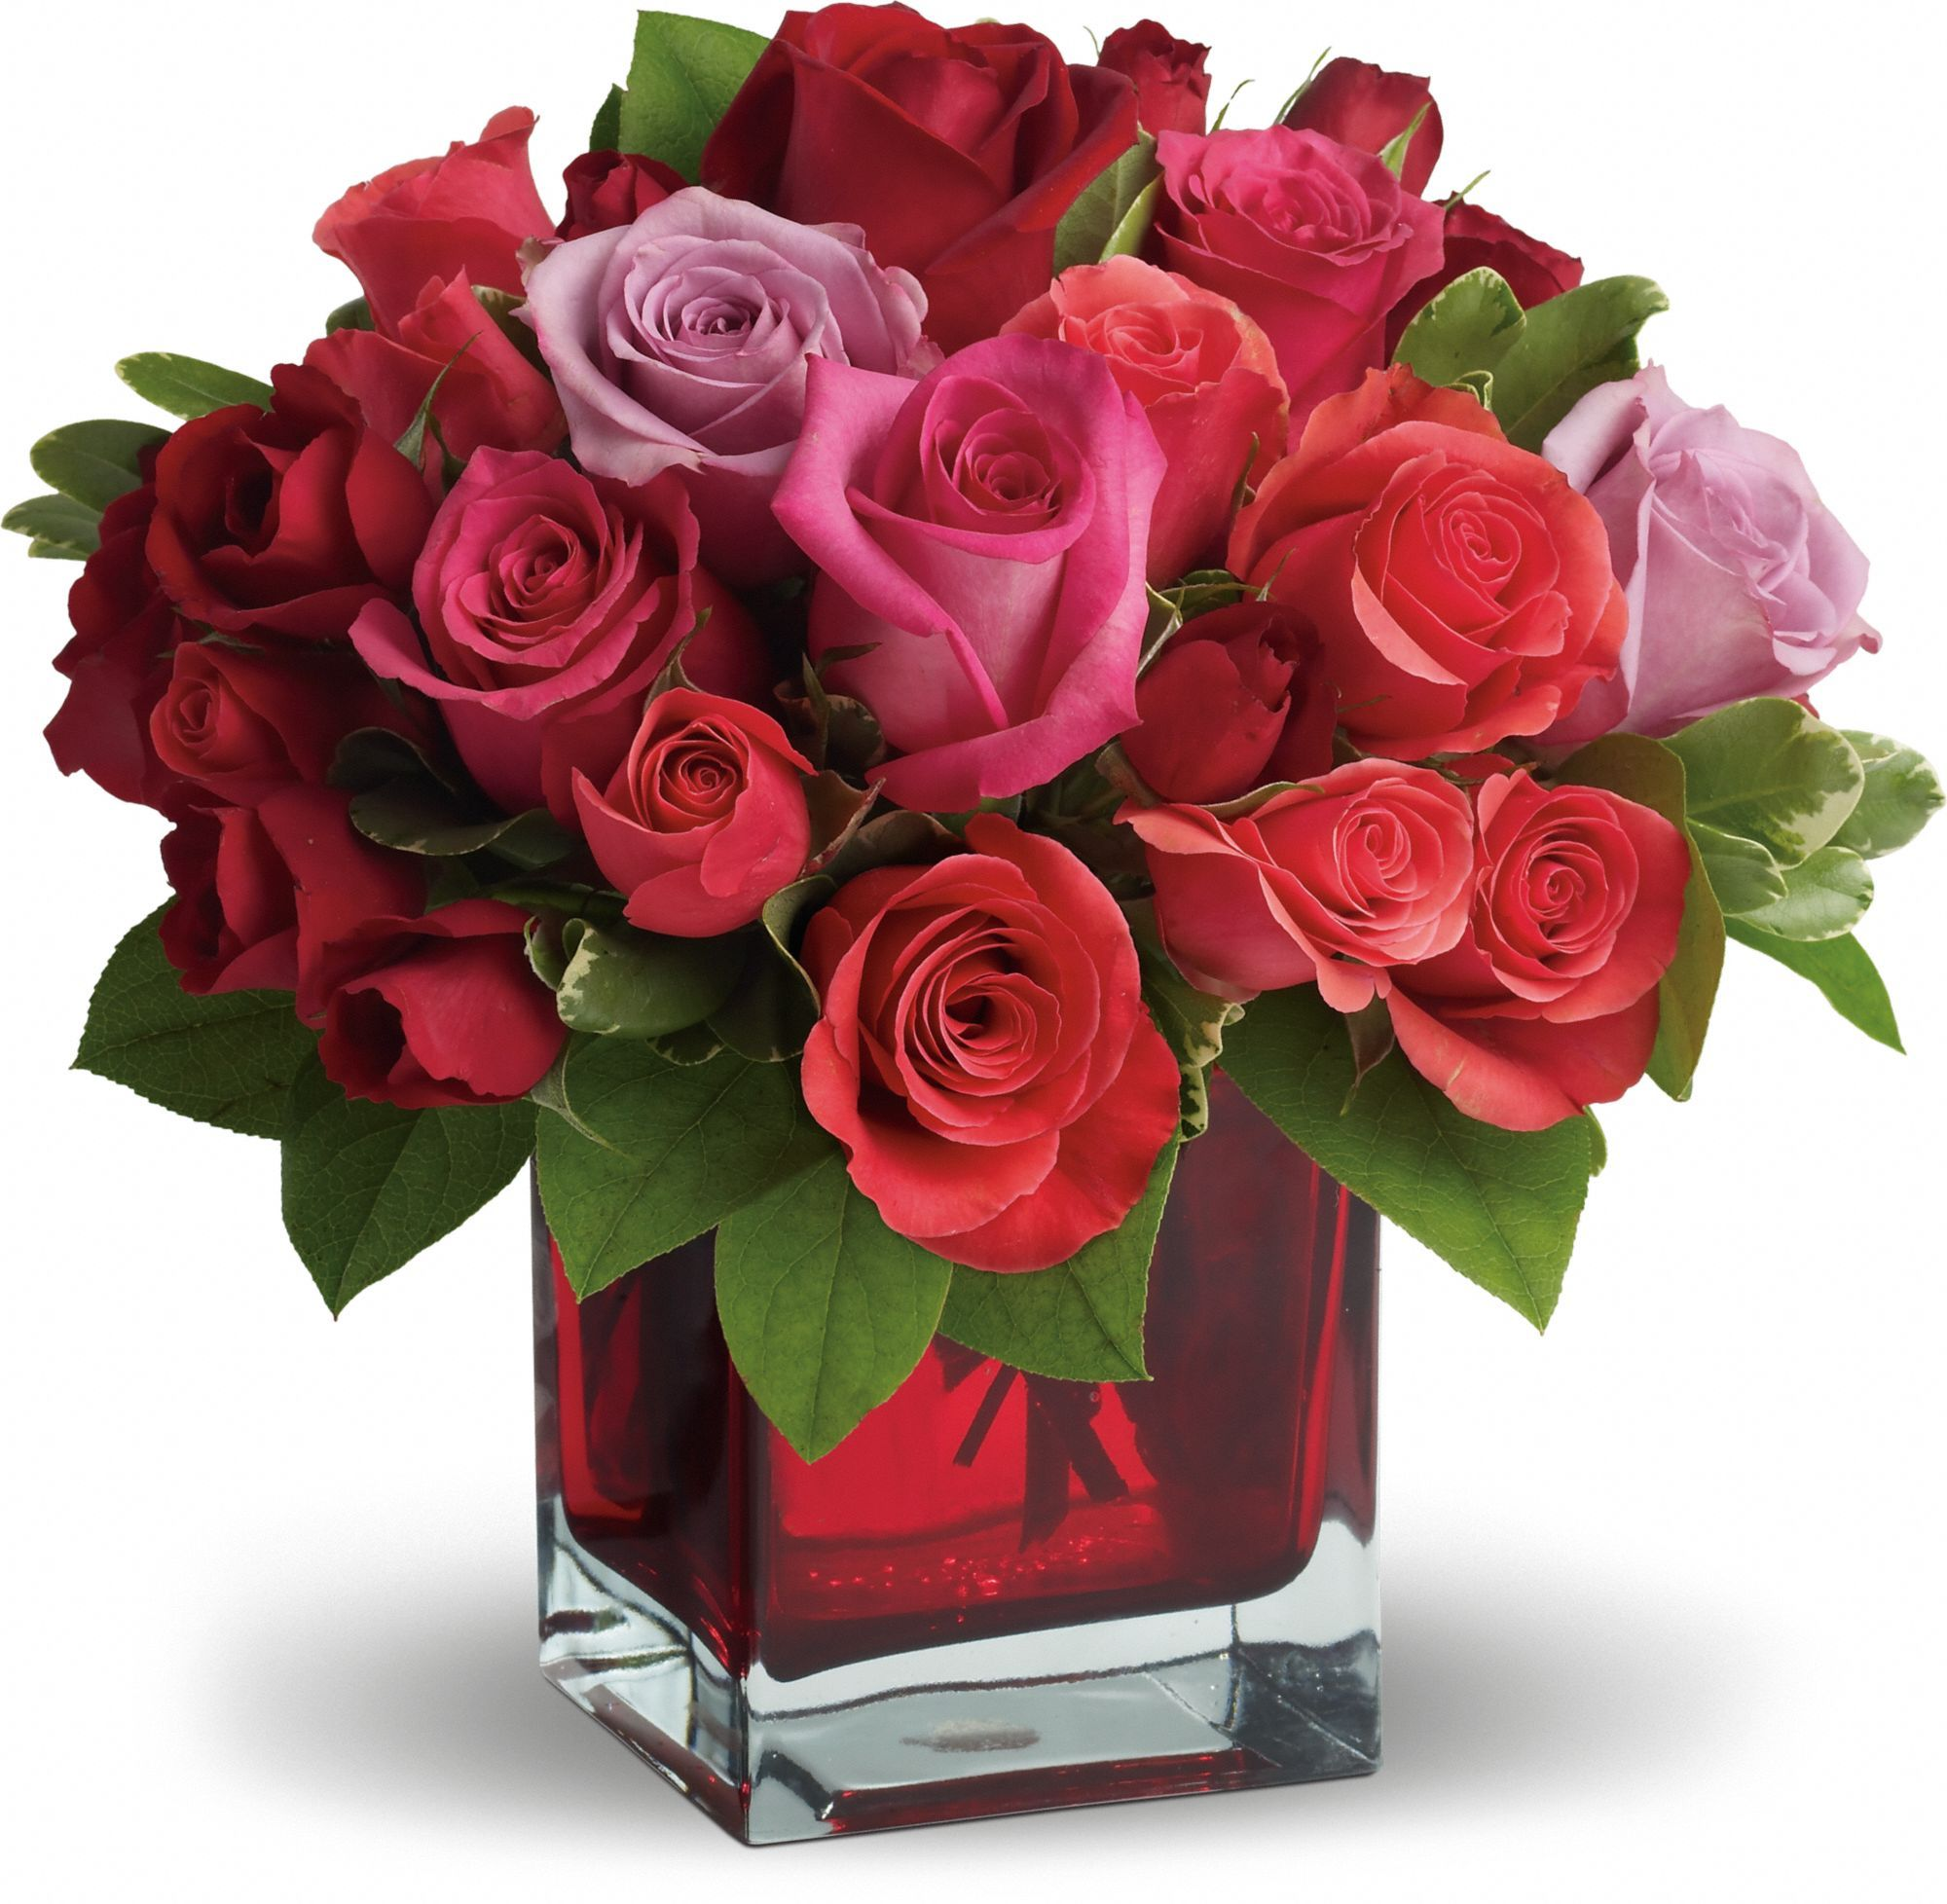 Madly in love bouquet with red roses by teleflora valentines at flowers izmirmasajfo